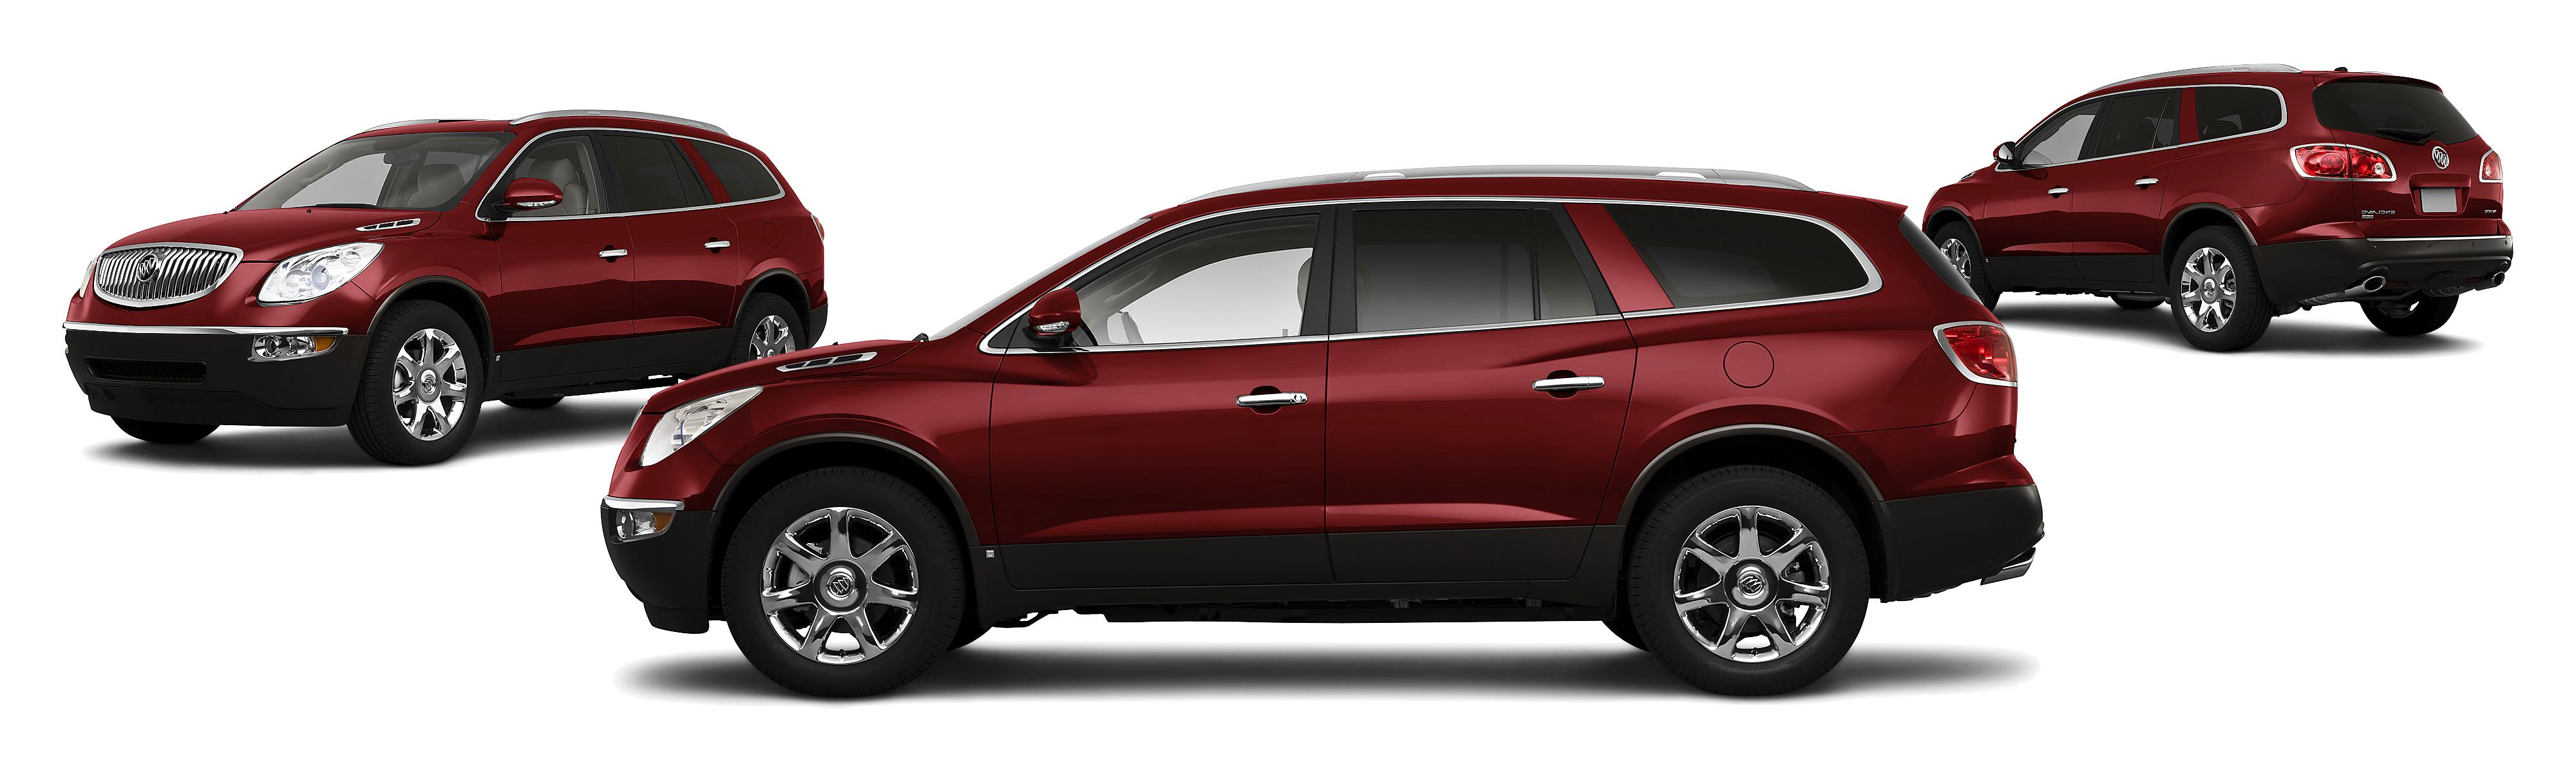 2017 Buick Enclave Fuse Box Location Trusted Wiring Diagram On Interior Gas Smell 2009 Doors Full Hd Ford Focus